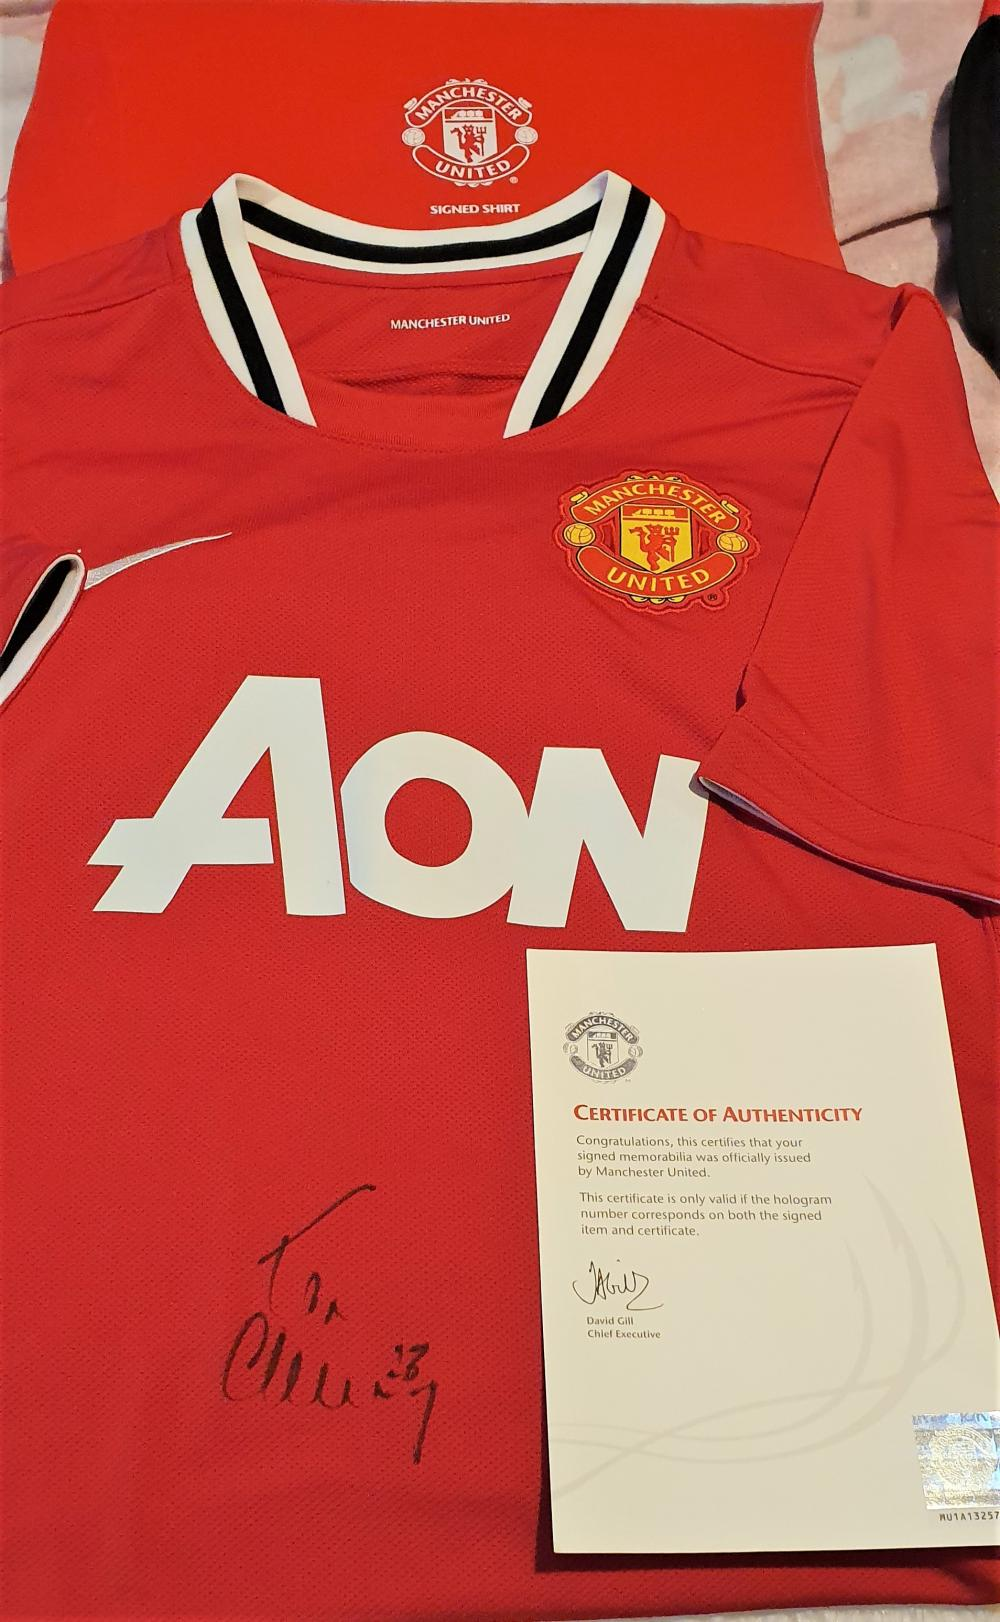 Lot 238: Tom Cleverly Signed Manchester United Football